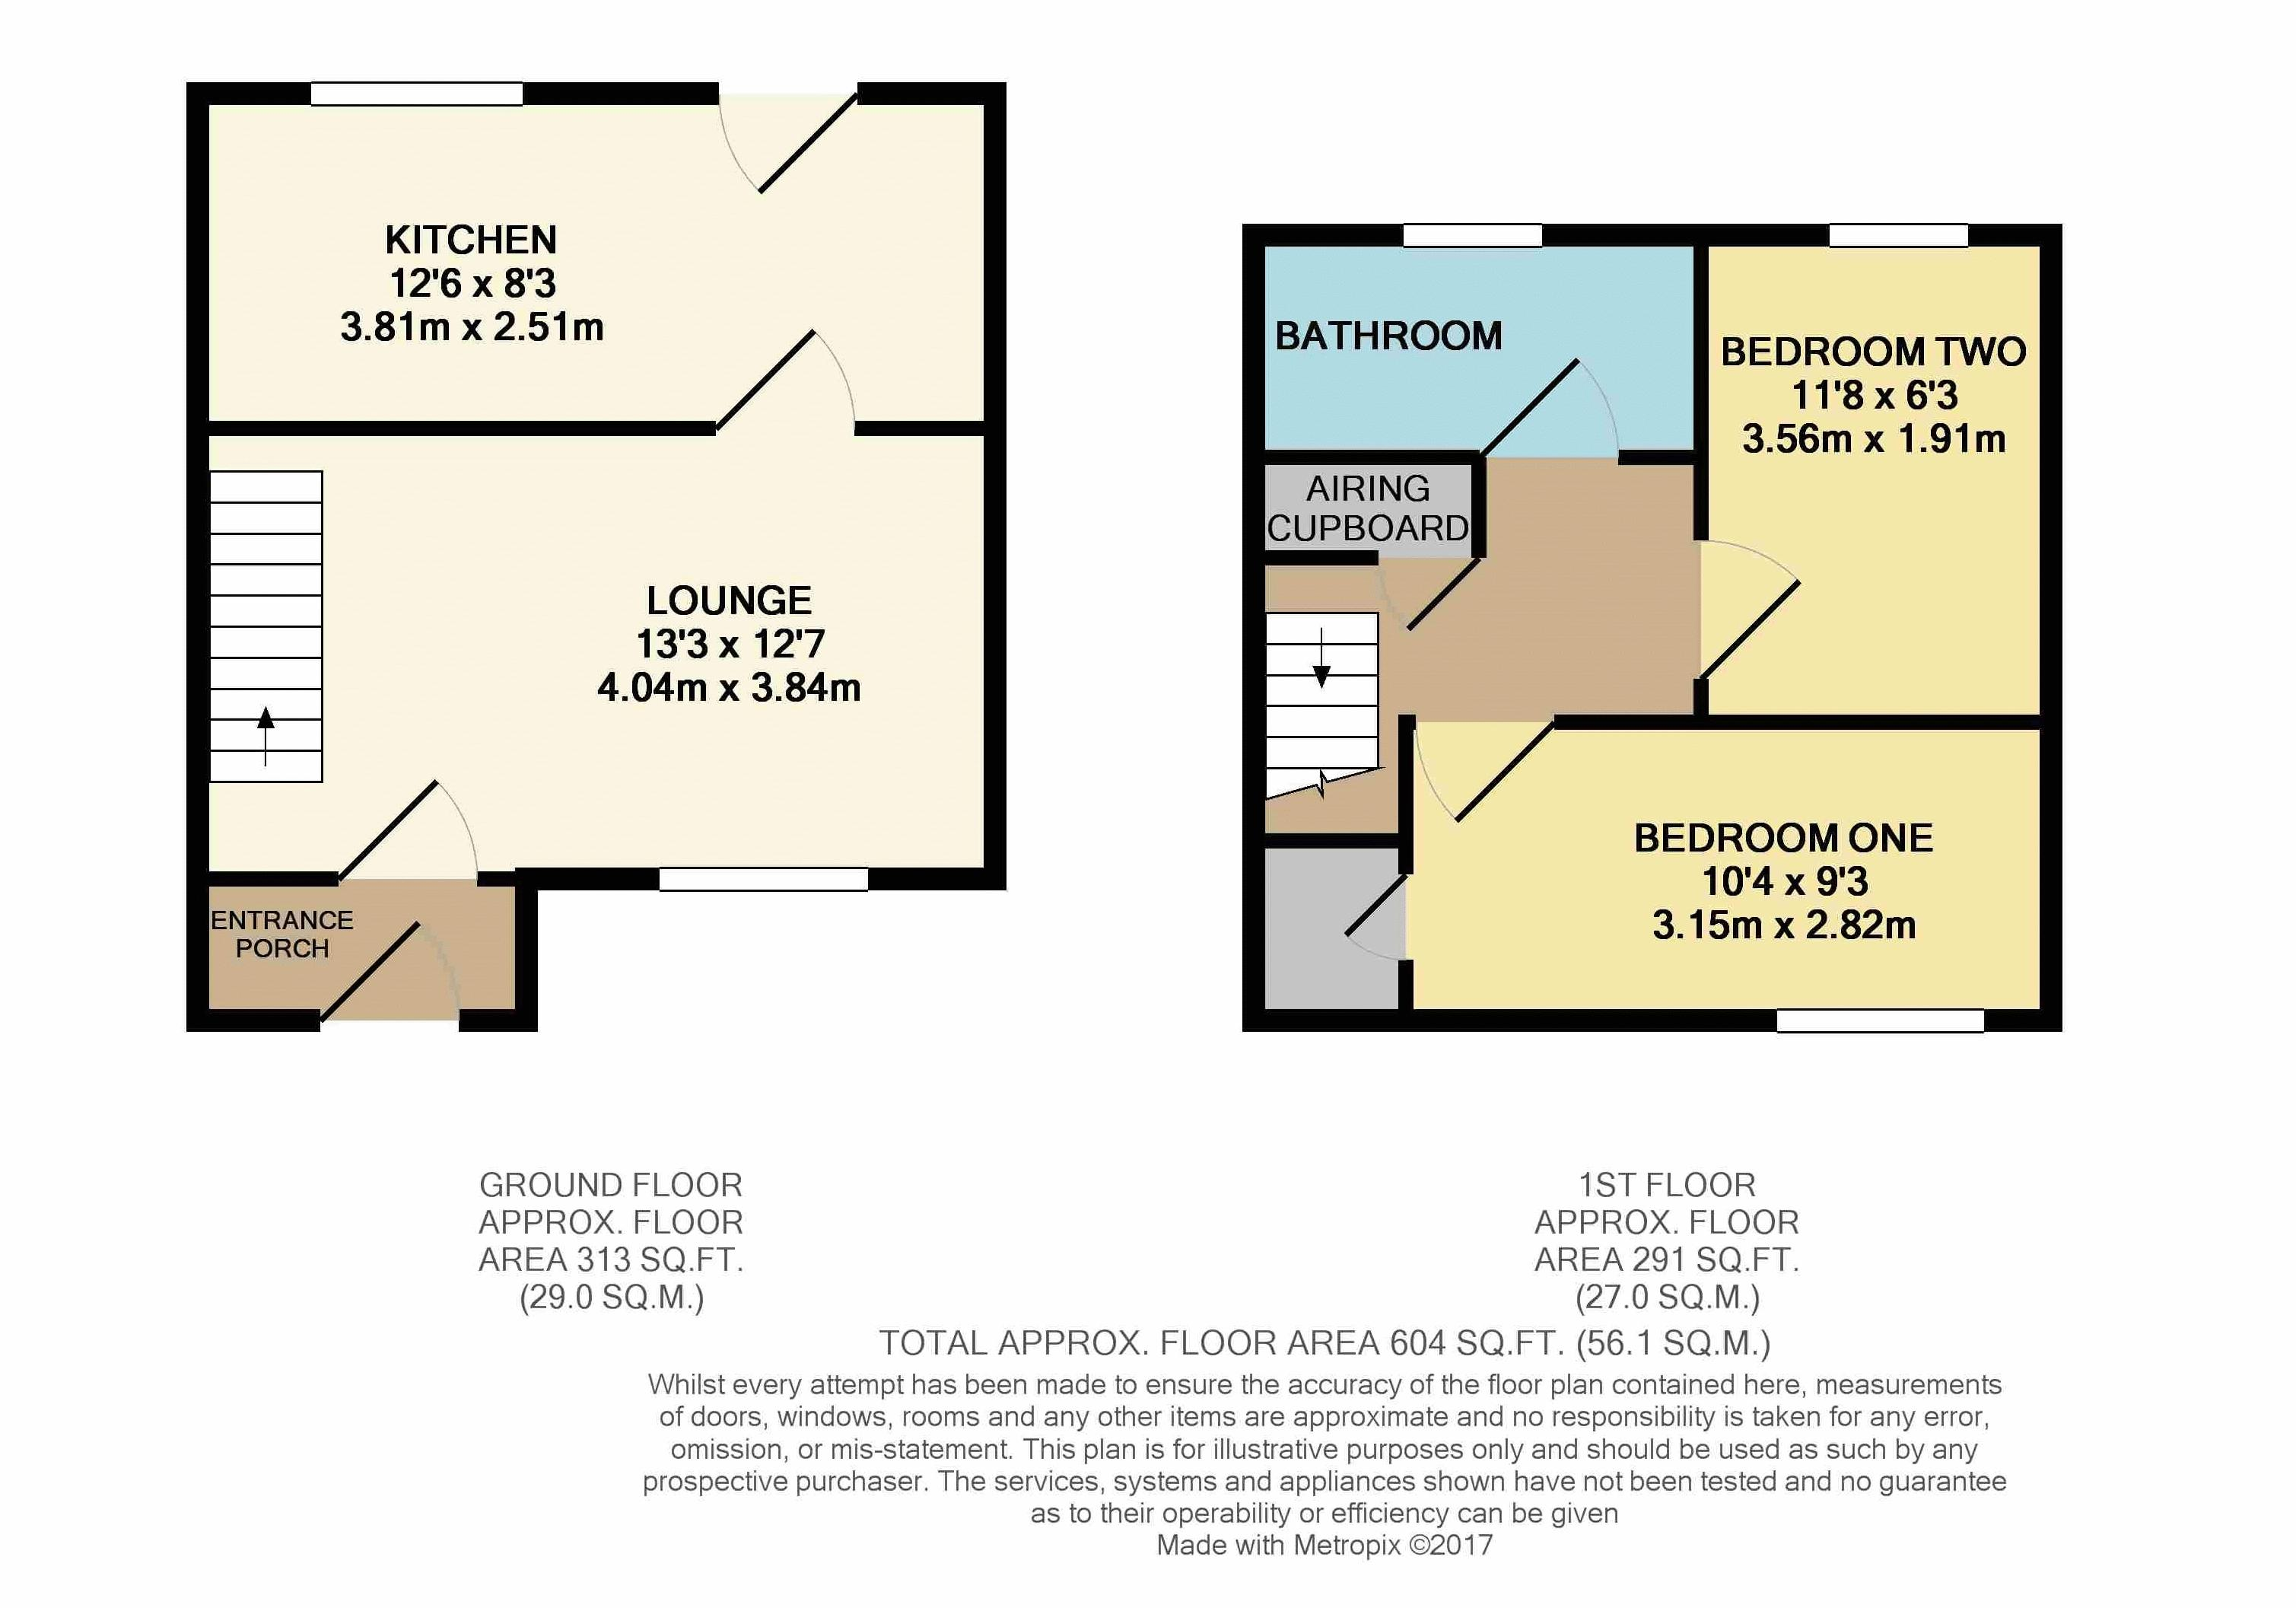 2 bedroom house for sale in luton for How much is a bathroom worth on an appraisal